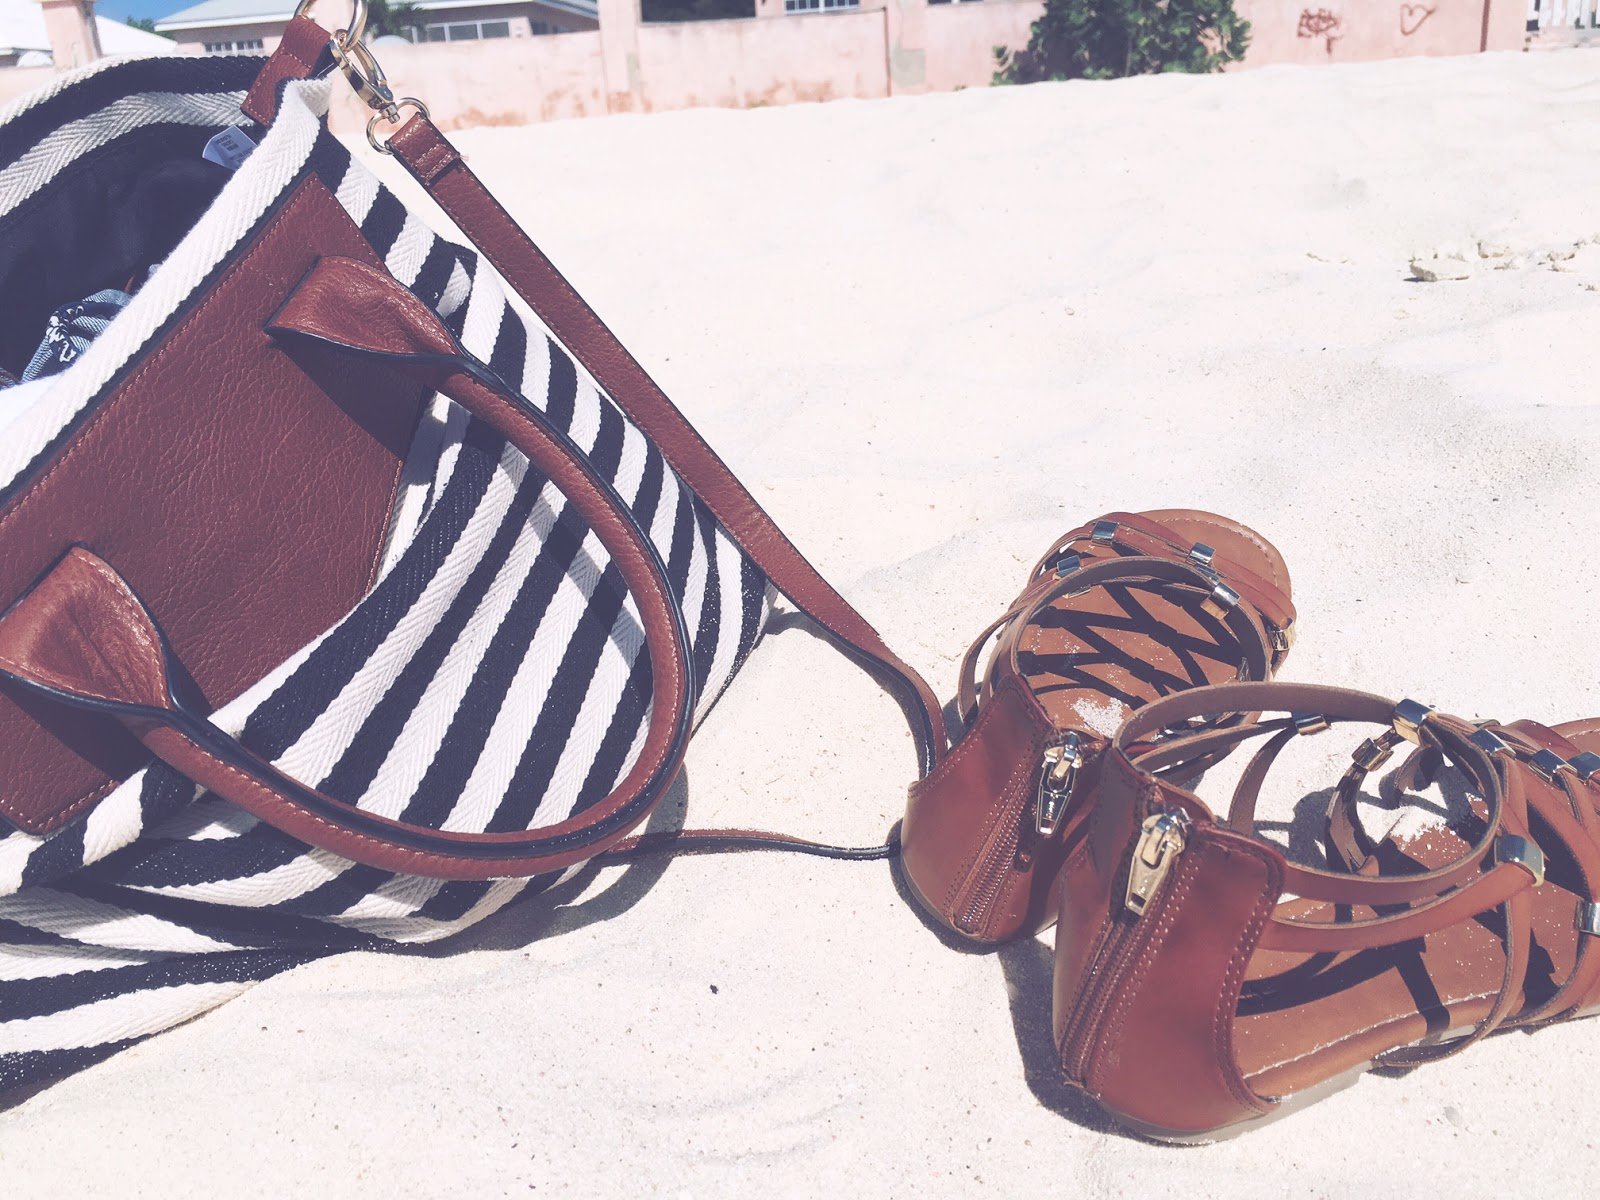 Striped beach bag and brown strappy sandals on sand of Grand Turk, Turks & Caicos beach